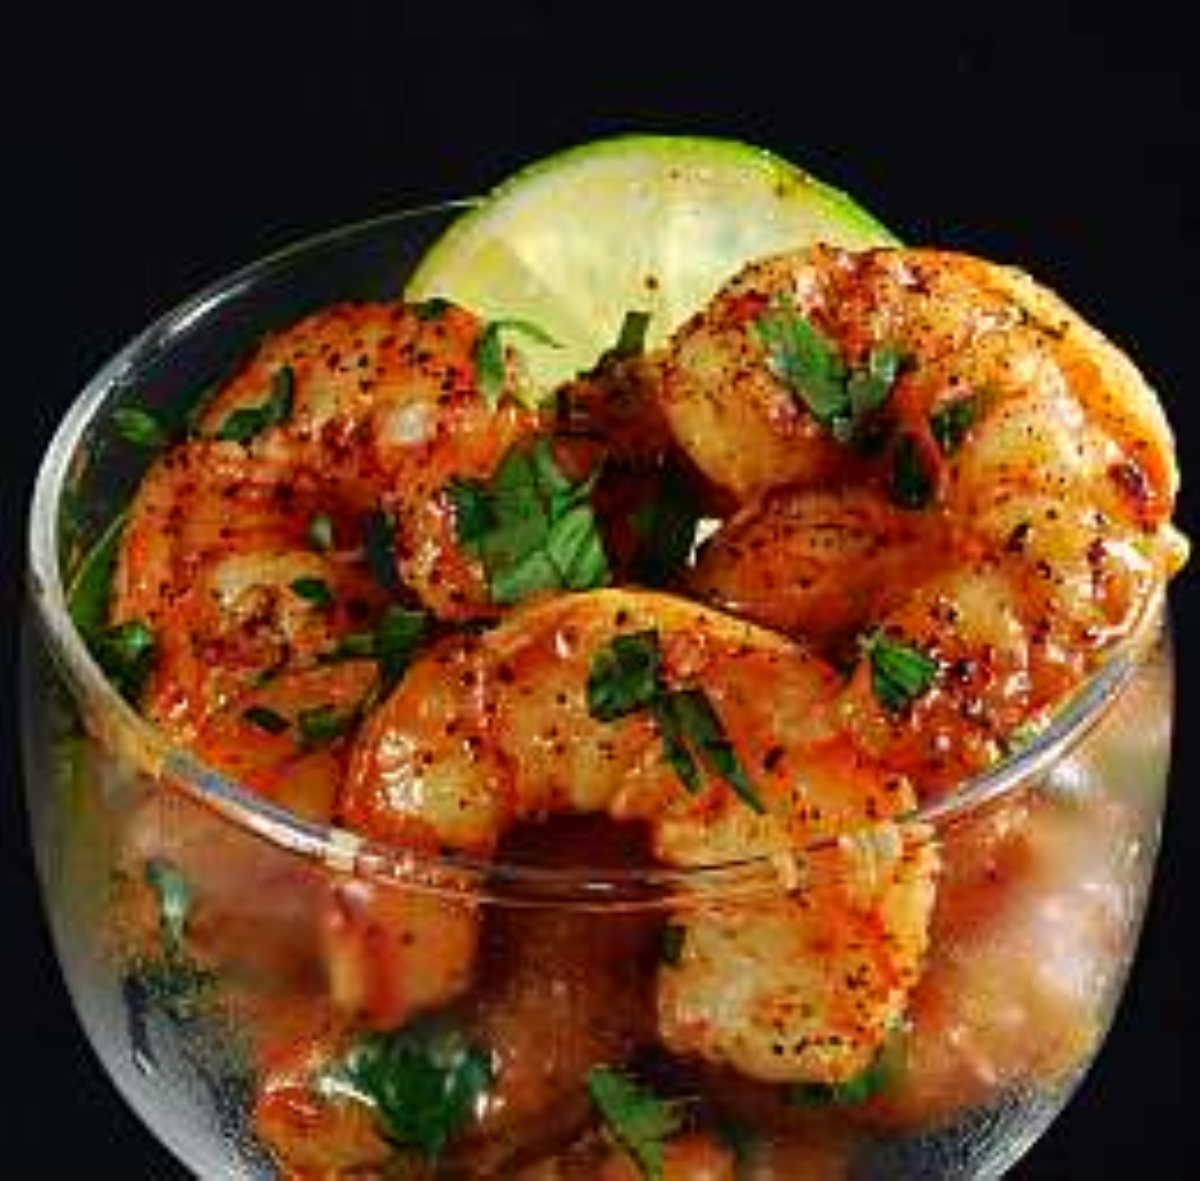 ... Course Main Dish Fish and Shellfish Tequila-Orange Grilled Shrimp